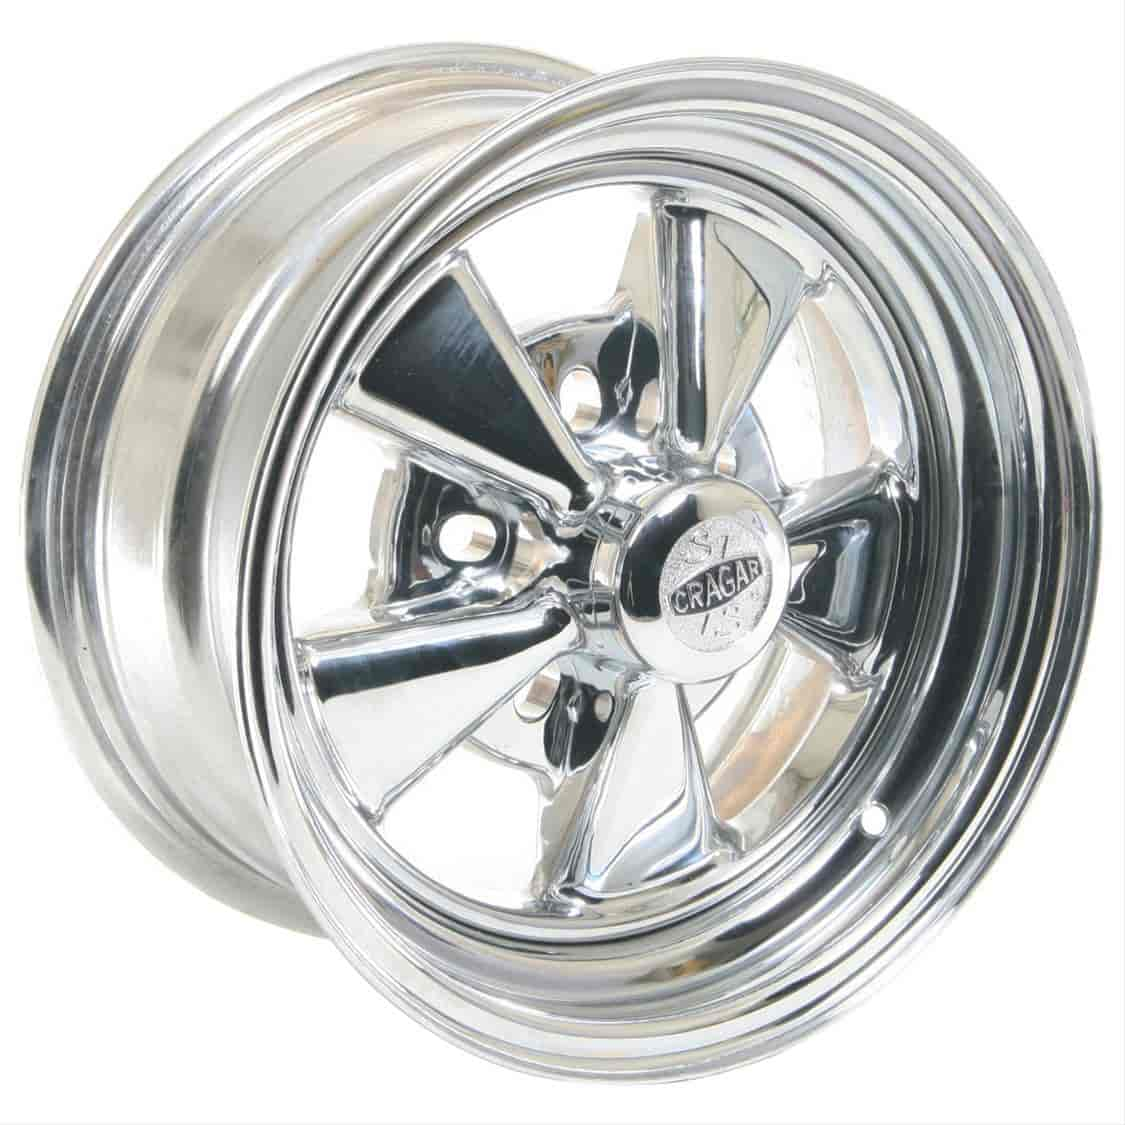 Cragar 61817 - Cragar 08/61 Series S/S Super Sport Wheels